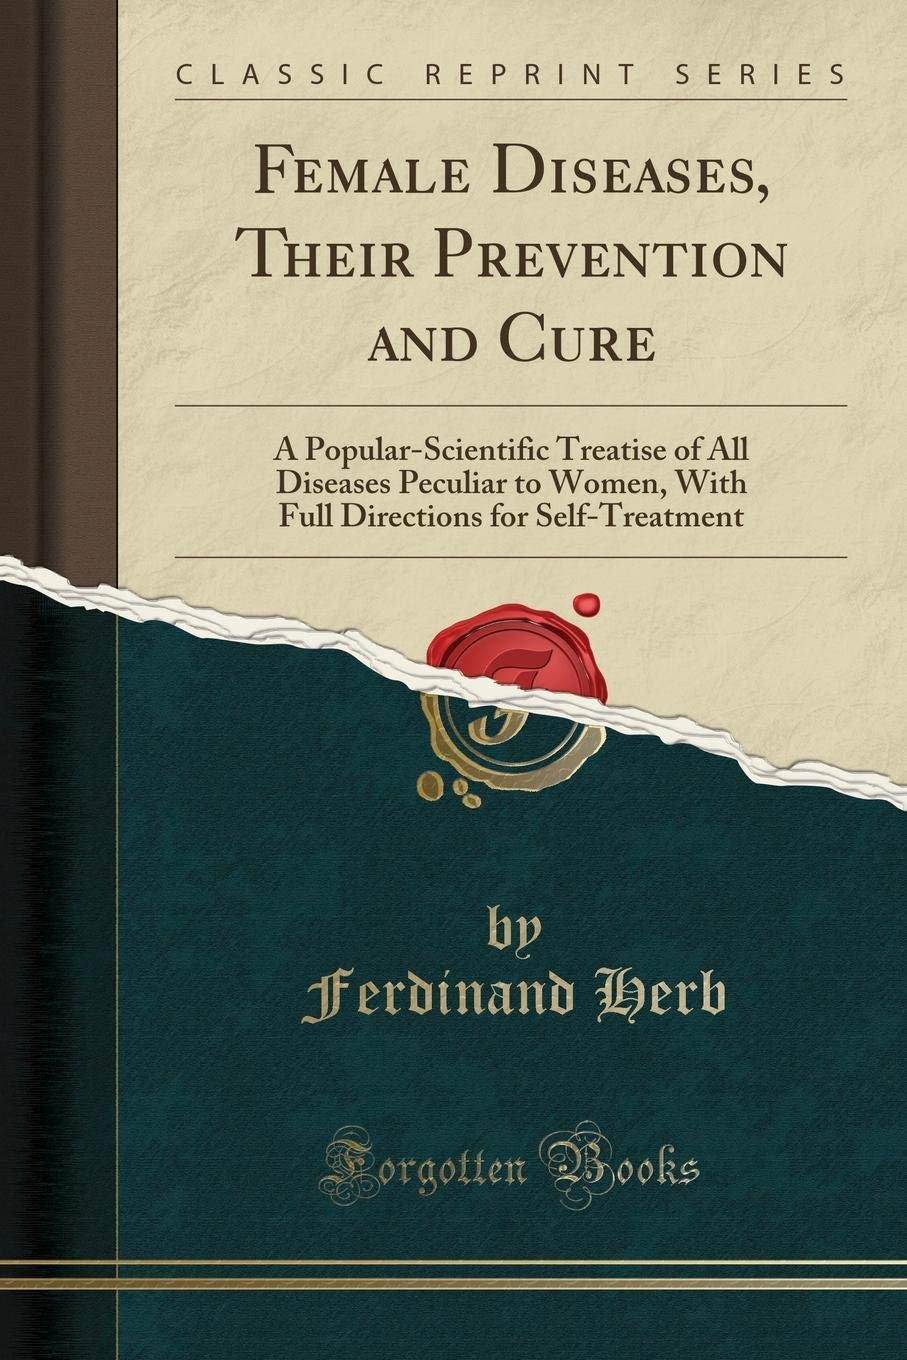 Female Diseases, Their Prevention and Cure: A Popular-Scientific Treatise of All Diseases Peculiar to Women, With Full Directions for Self-Treatment (Classic Reprint) PDF